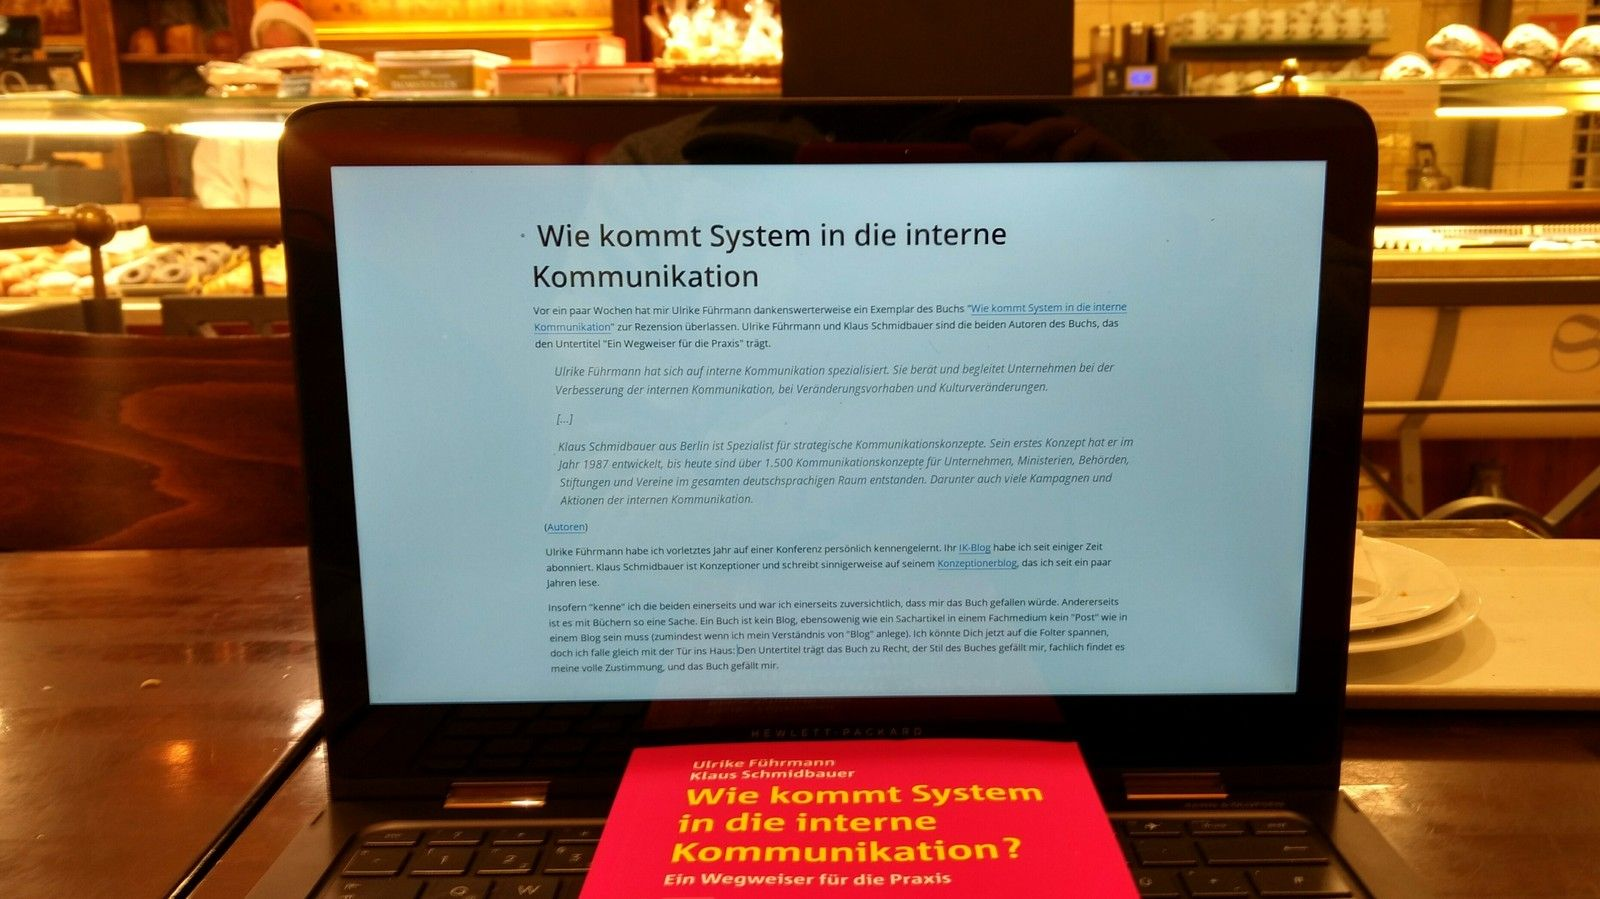 Wie kommt System in die interne Kommunikation? (Rezension)